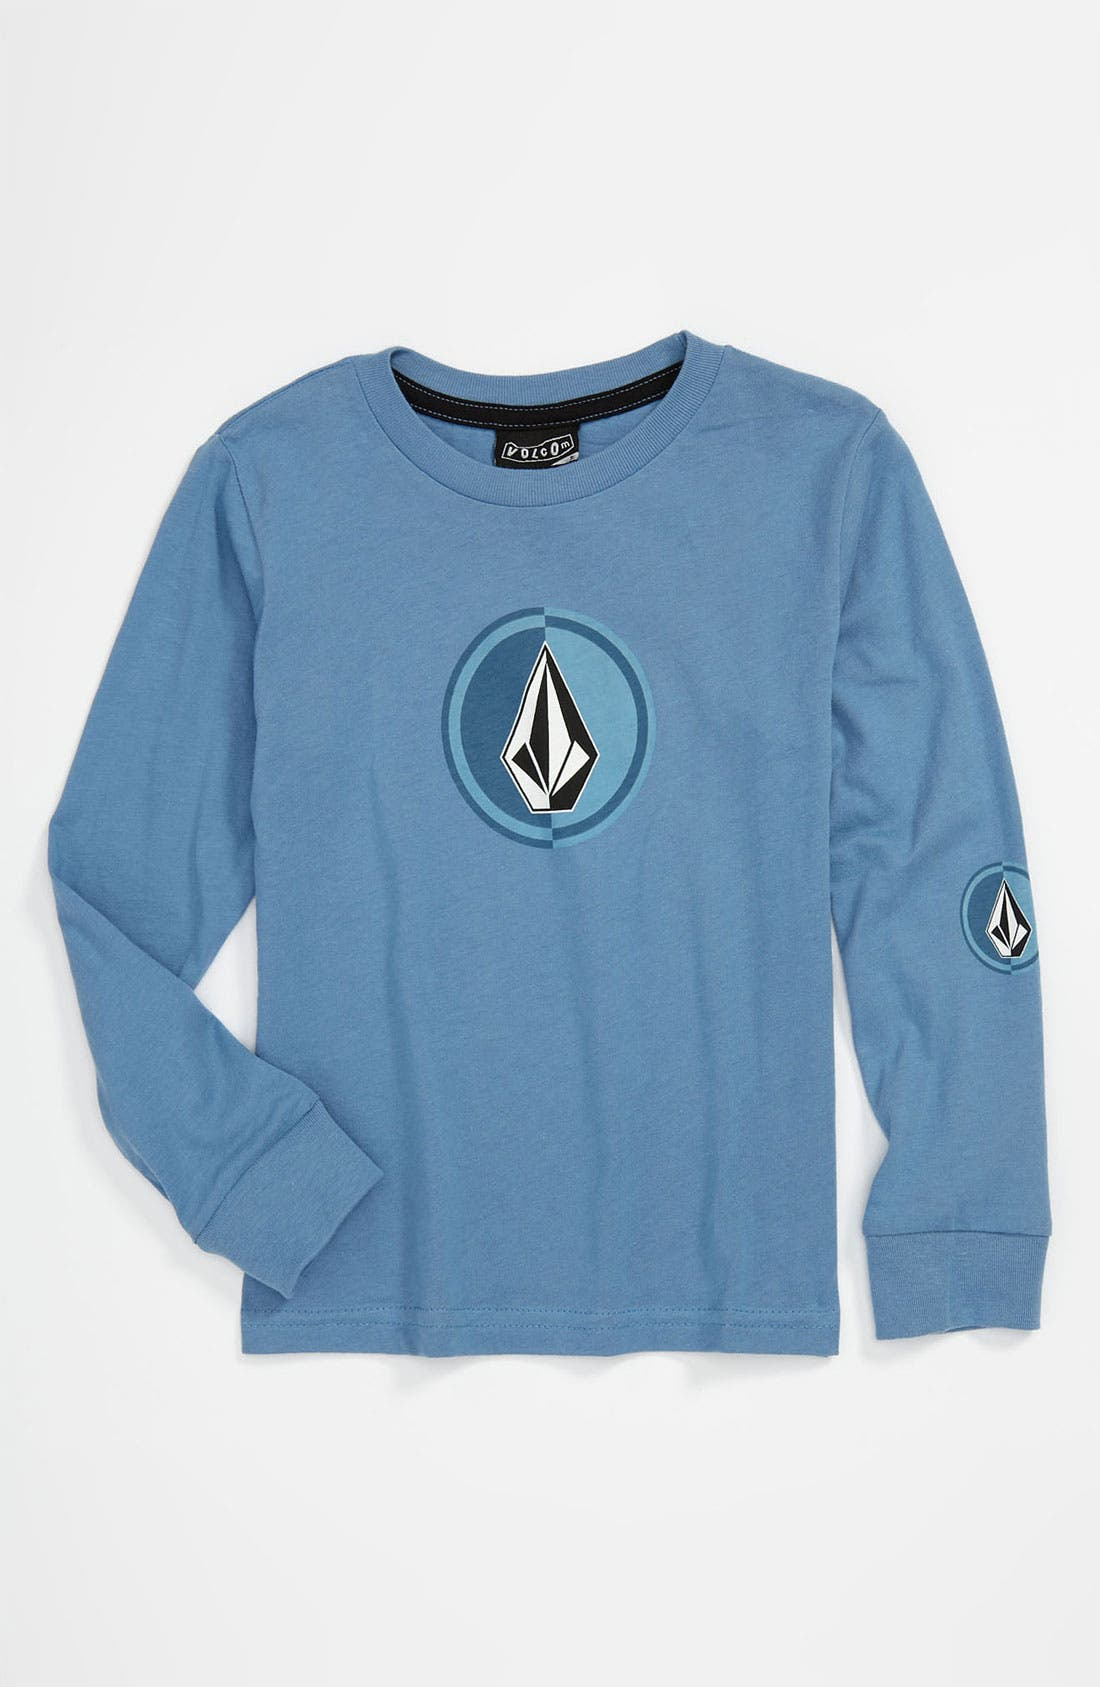 Alternate Image 1 Selected - Volcom 'Circle Stone' T-Shirt (Little Boys)